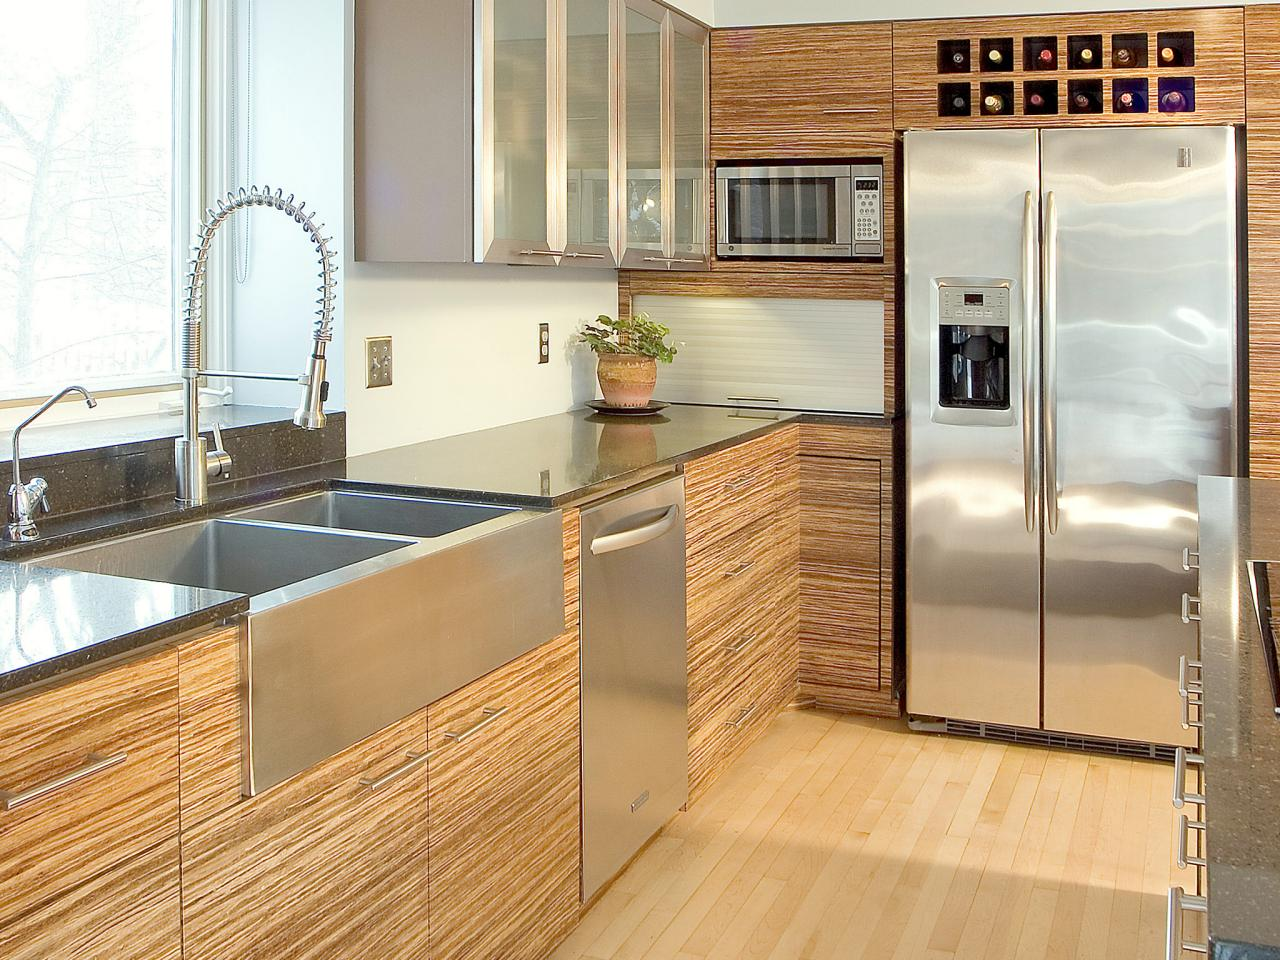 Modern kitchen cabinets with oak kitchen cabinets with wall cabinets with kitchen pantry cabinet